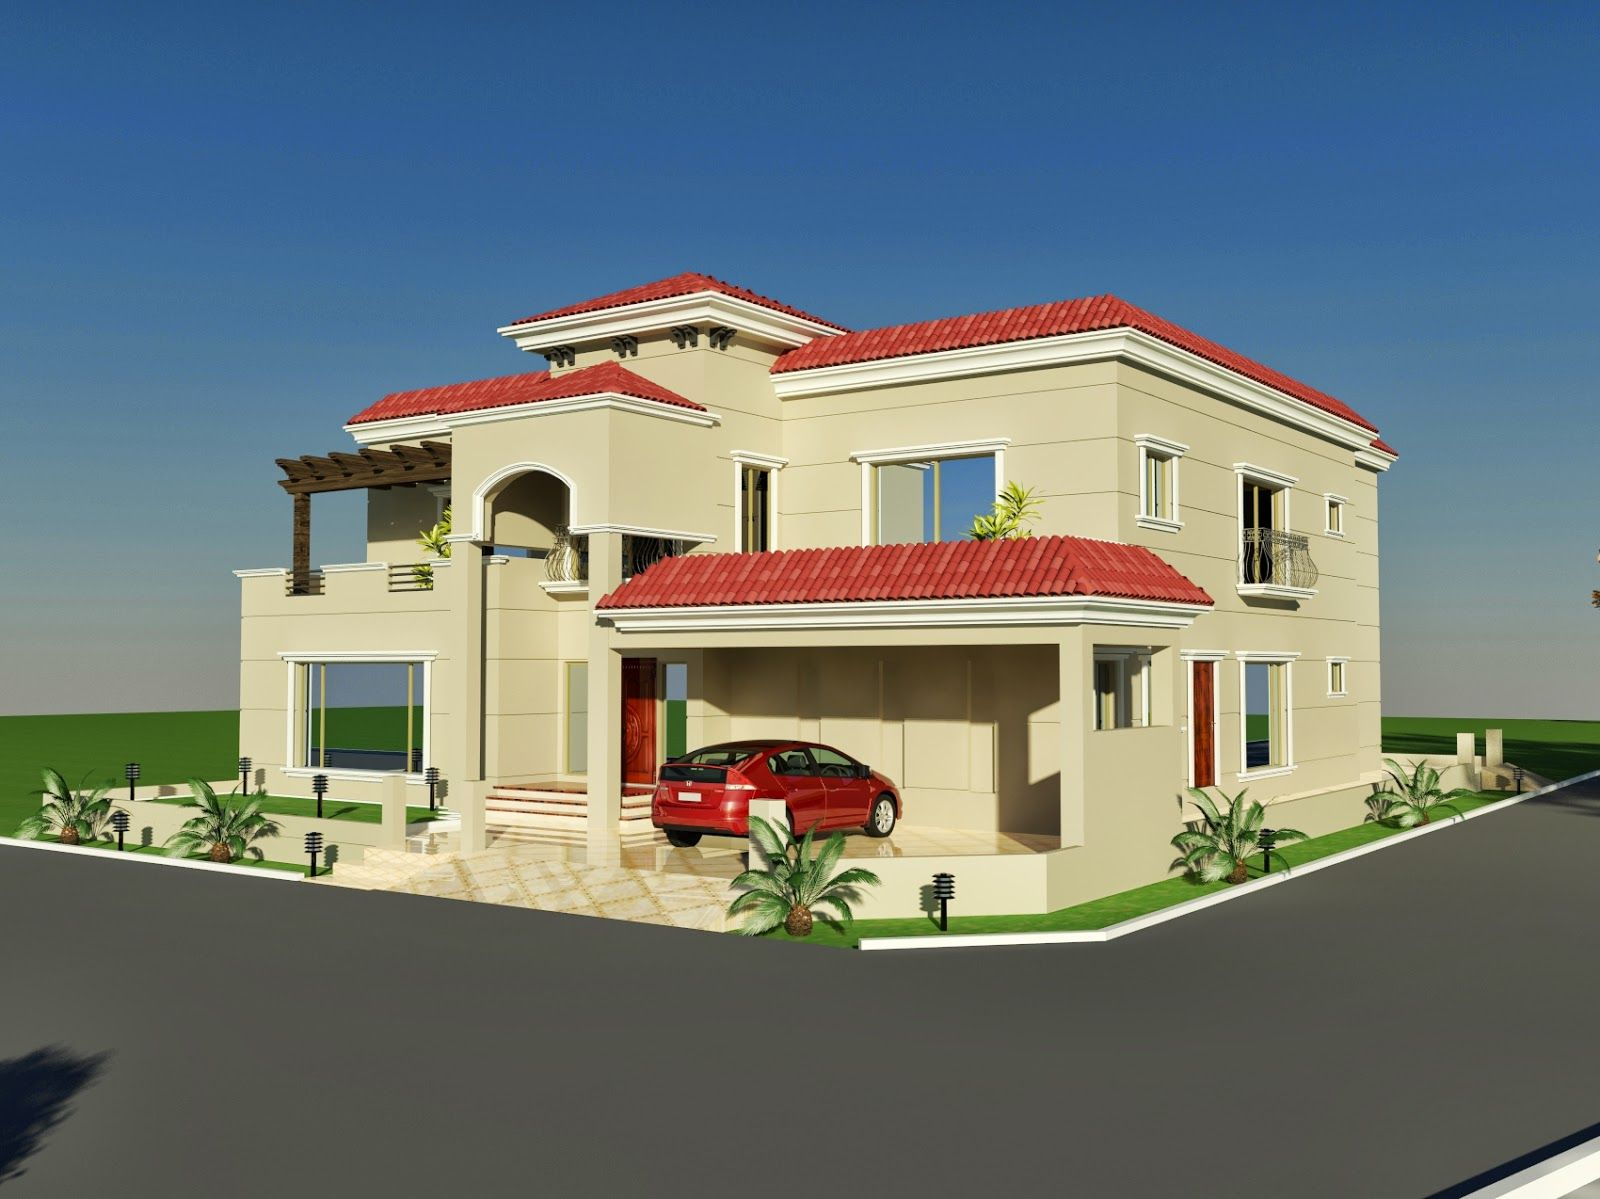 Best Kitchen Gallery: 60' X 100' Wapda Town 1 Kanal House Design 3d Front Elevation In of The Best 3d Home Design  on rachelxblog.com